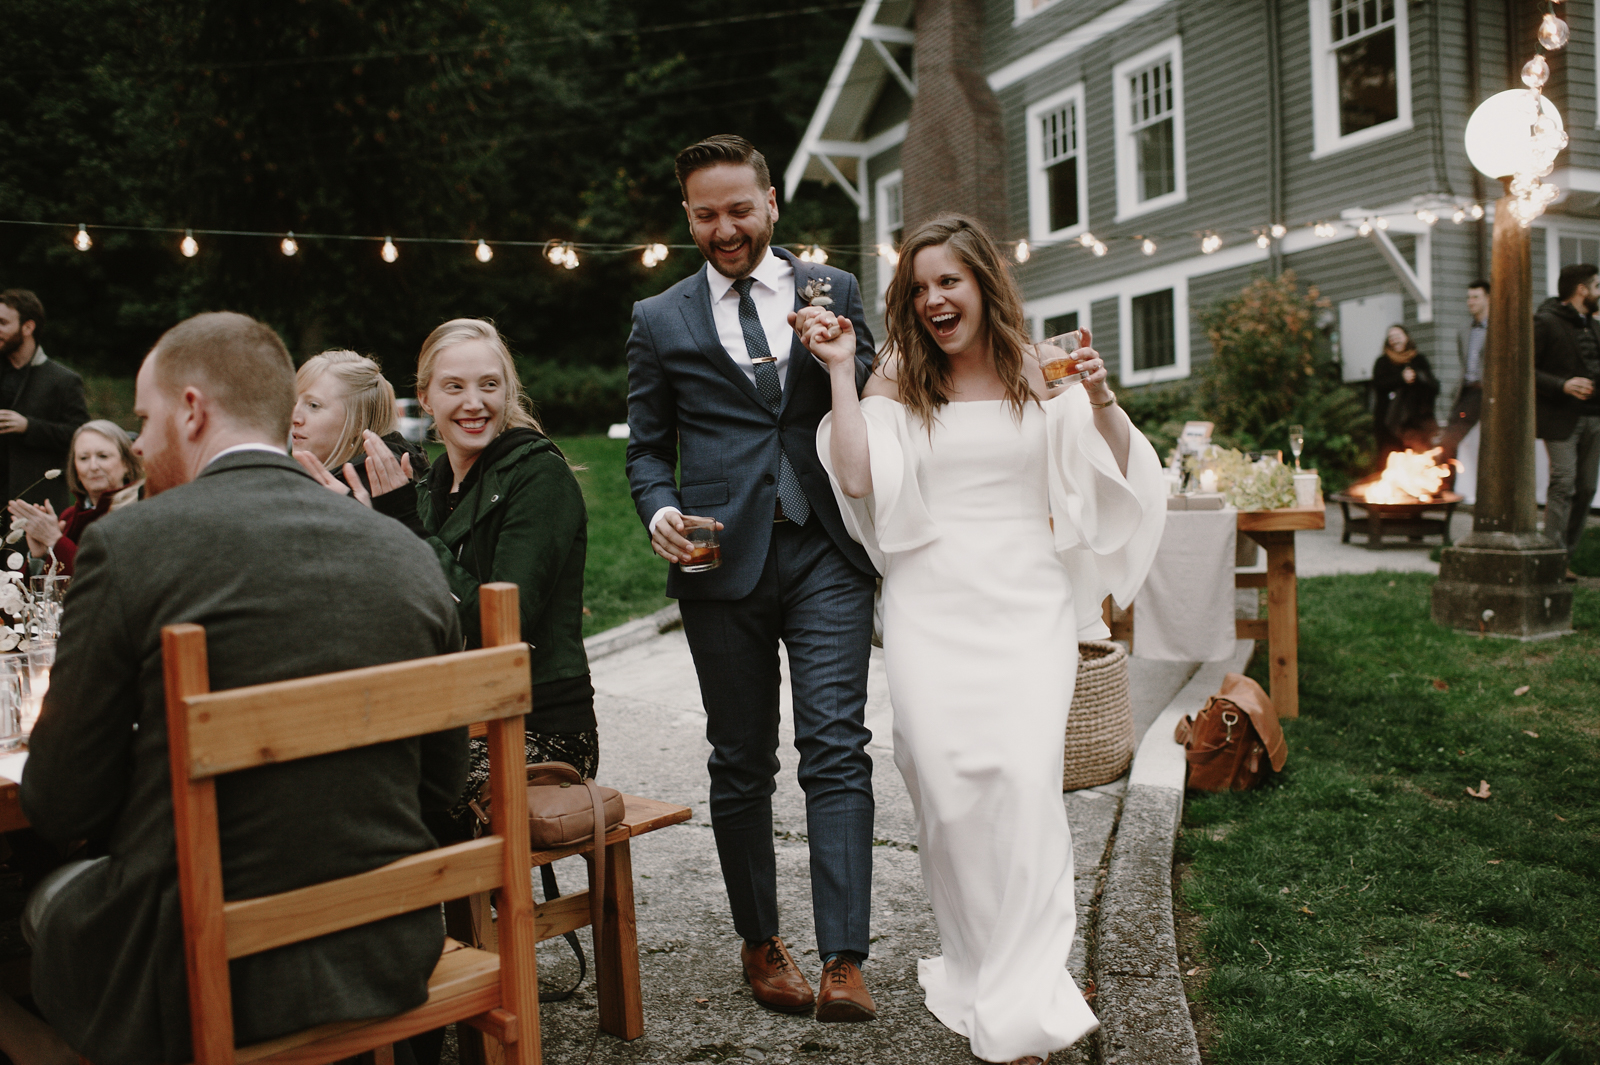 Kristen_Marie_Parker_Woodstock_Farm_Wedding089.JPG